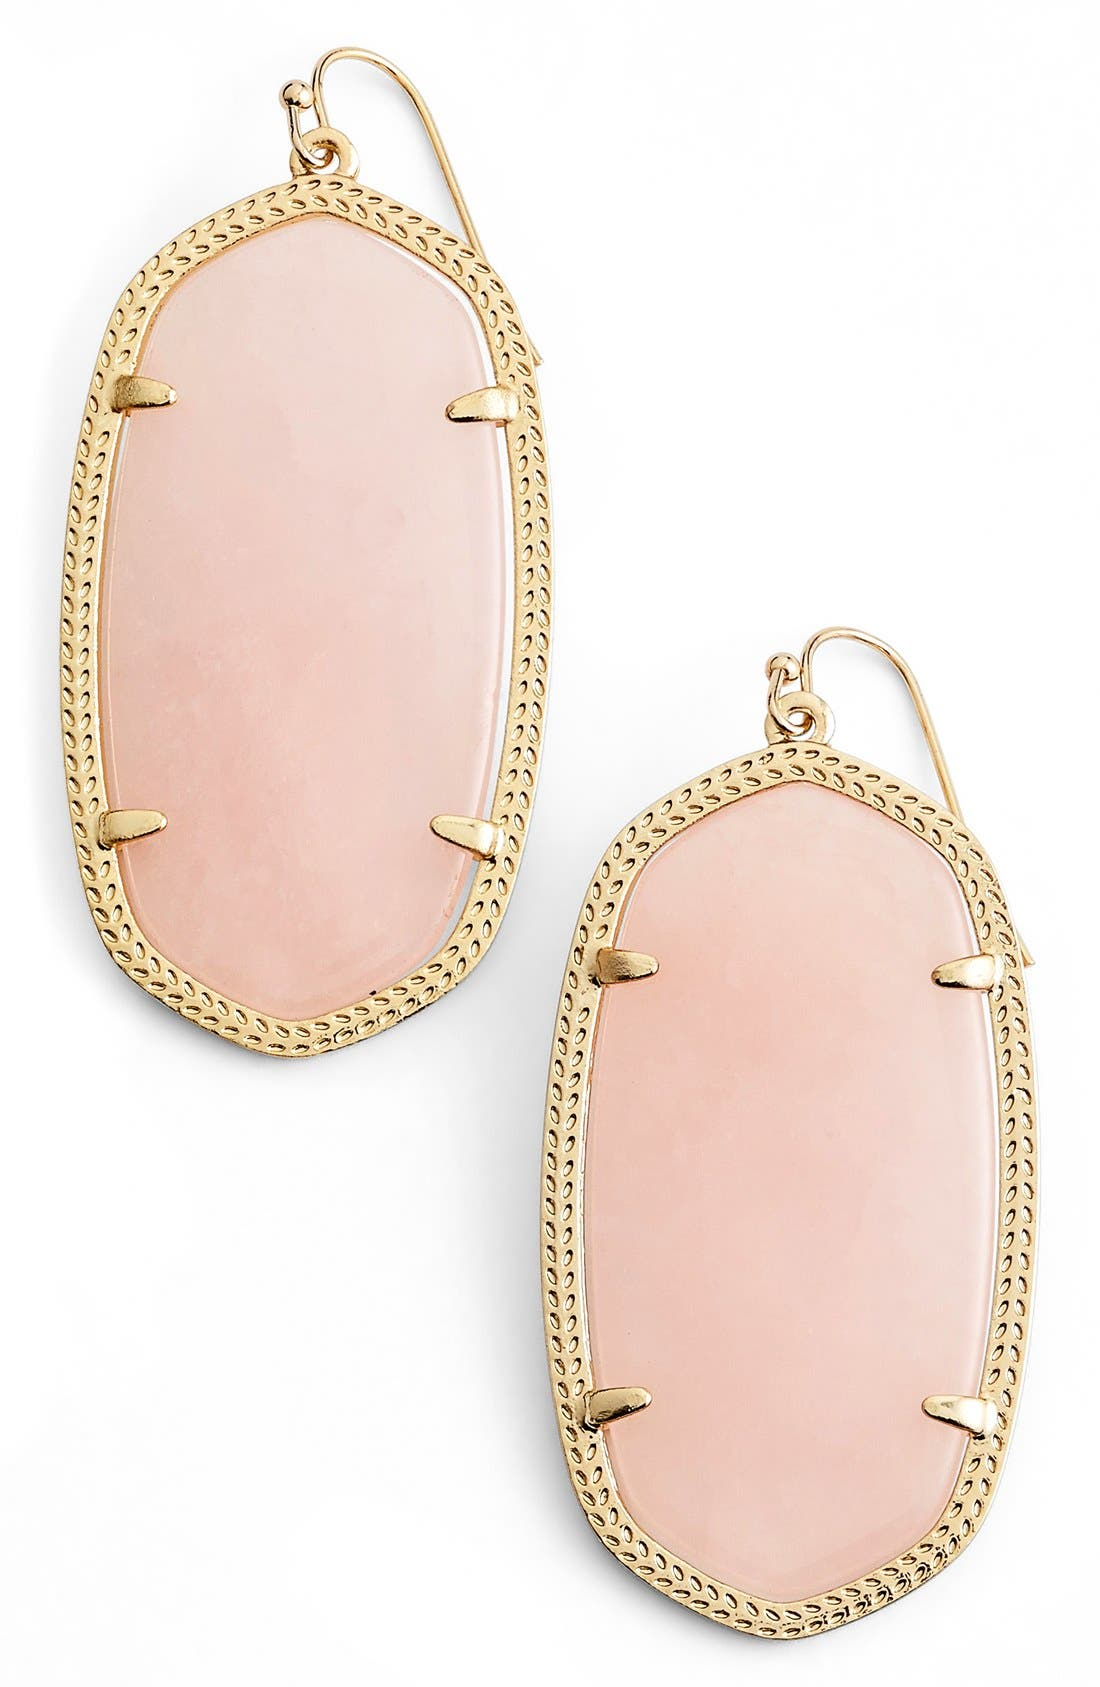 Danielle - Large Oval Statement Earrings,                             Main thumbnail 27, color,